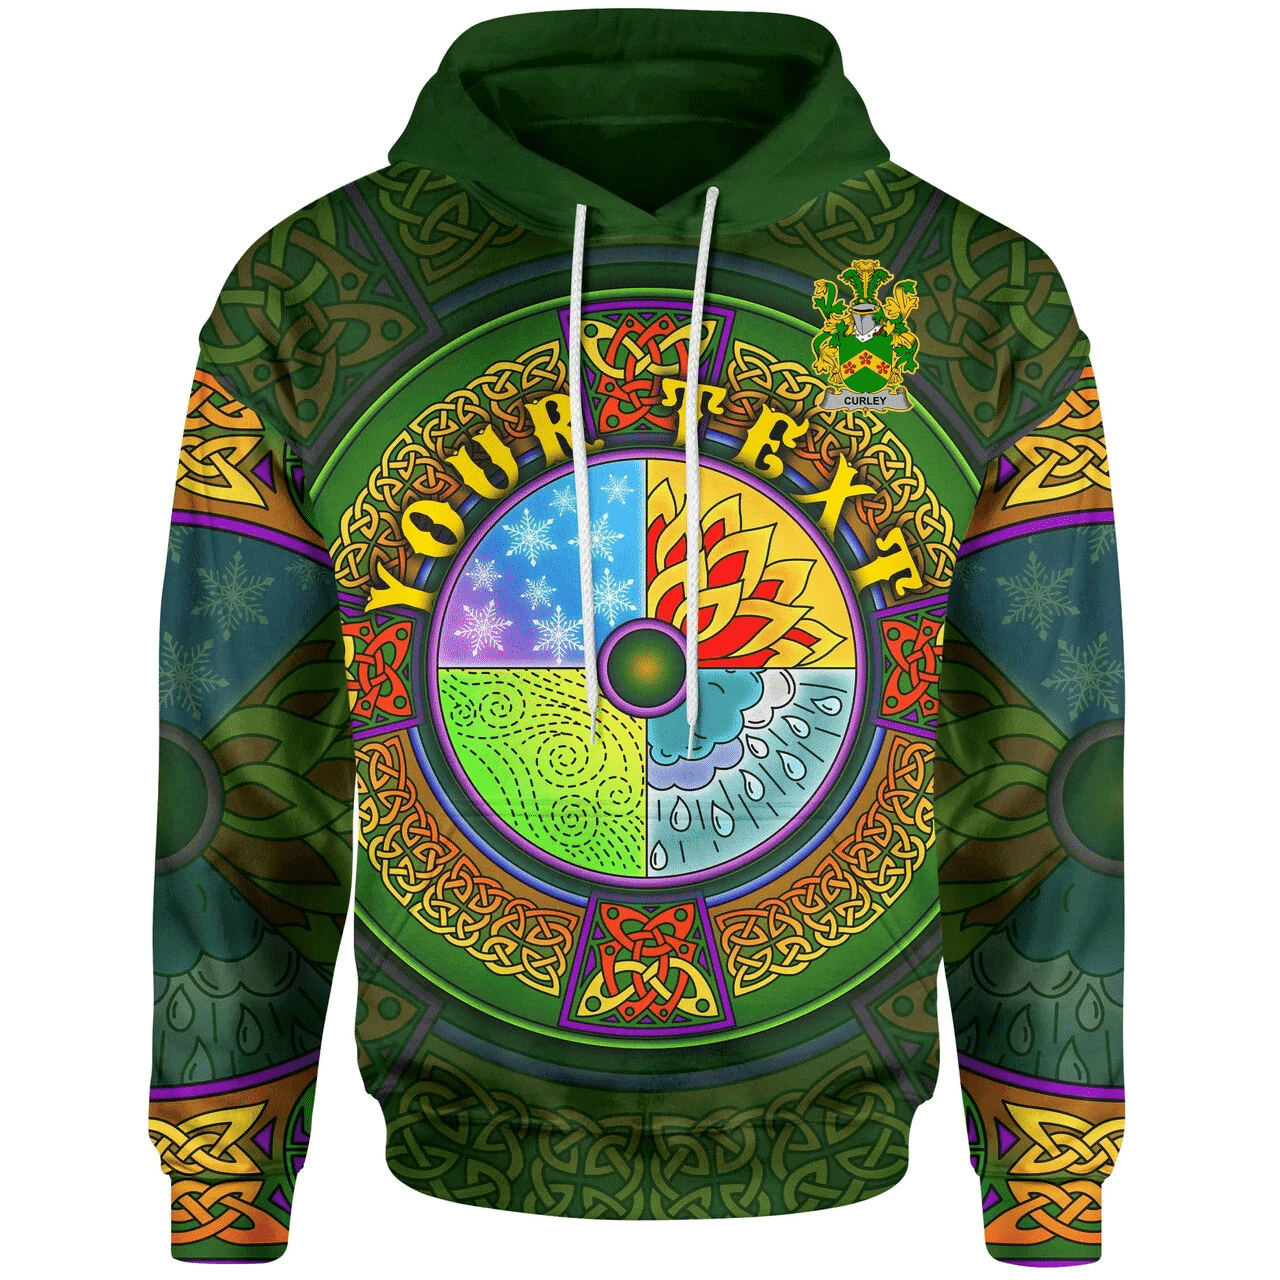 (Custom) 1stIreland Ireland Hoodie - Curley or McTurley Irish Family Crest Hoodie - Celtic Elements A7